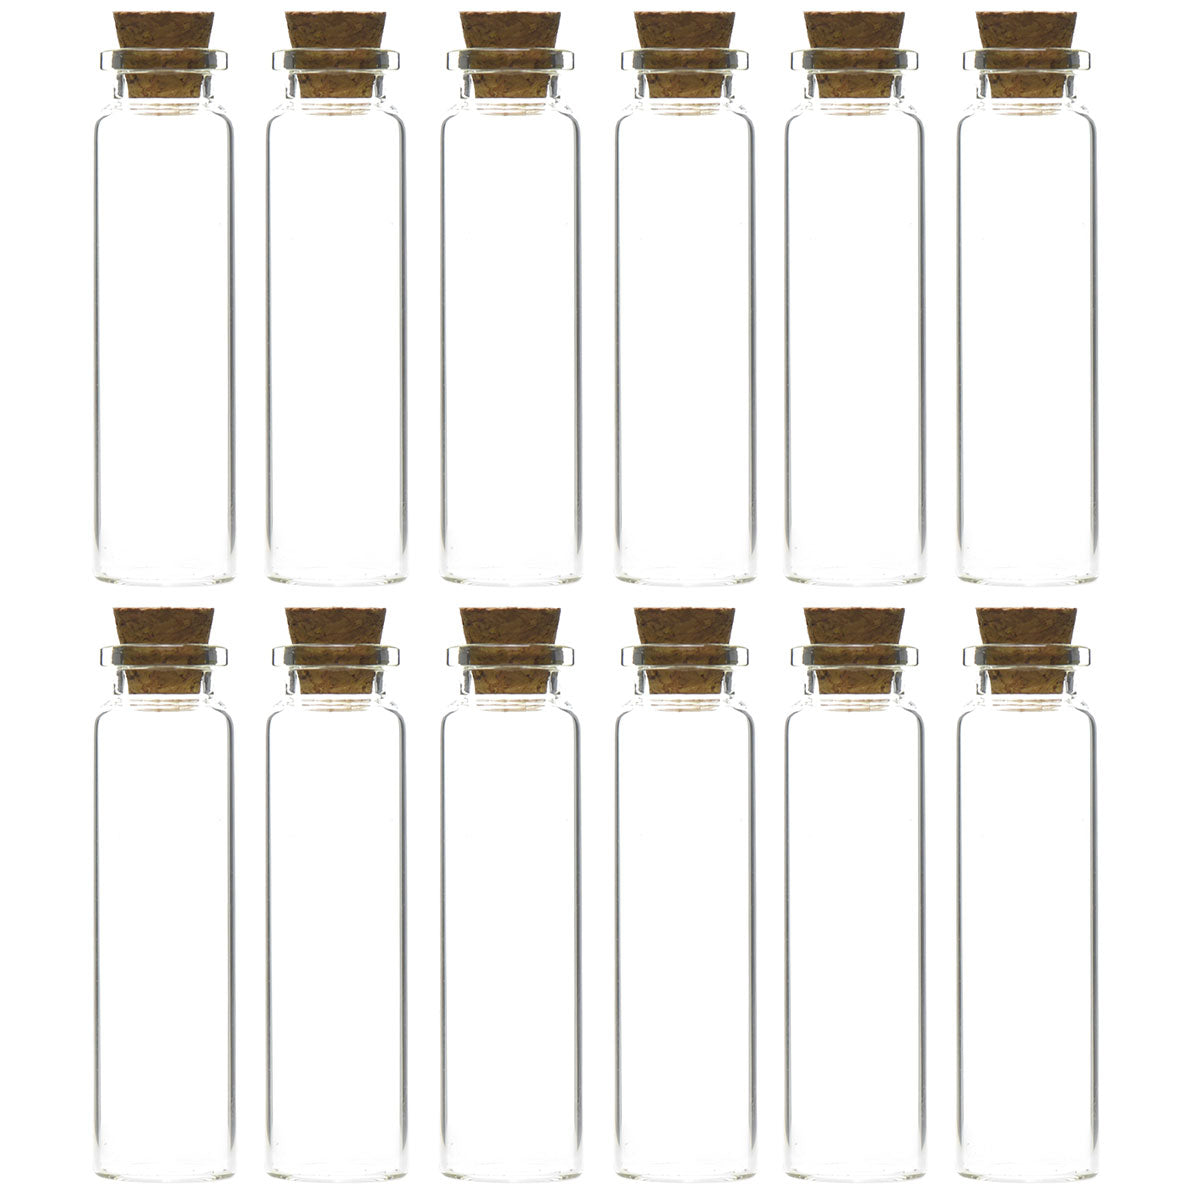 Mini Transparent Glass Bottles,Jars with Cork Stoppers for Scents, Oils, Spices, Collections, Wedding, Jewelry, Message, Party Favors etc